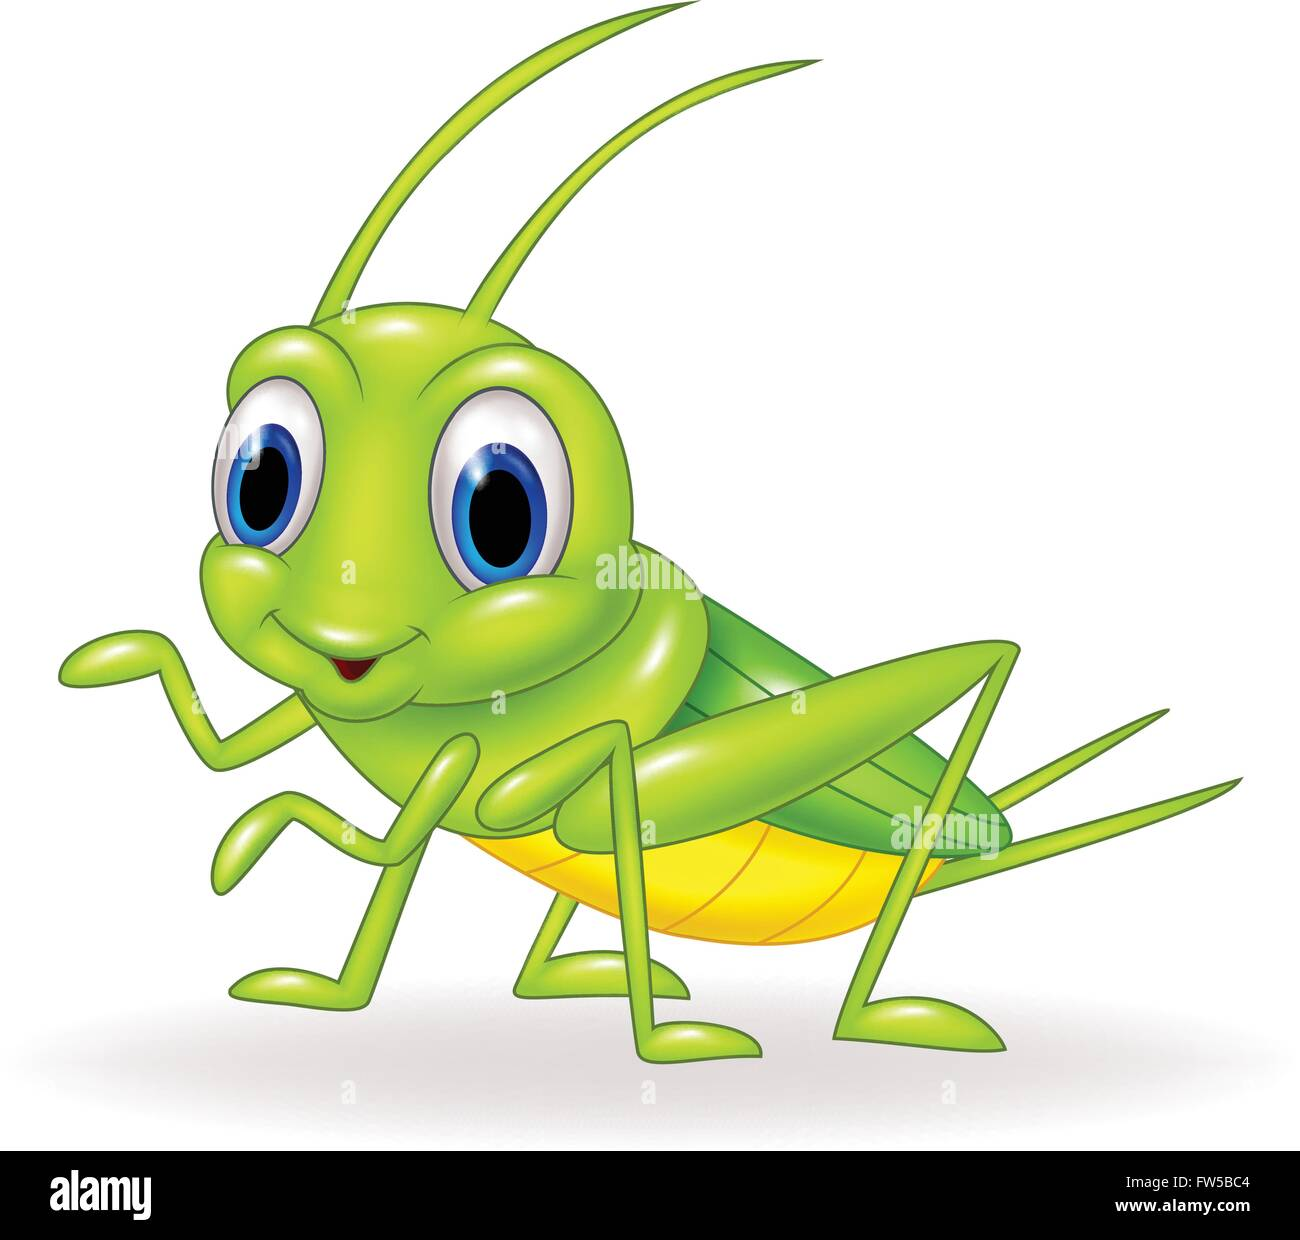 cricket insect cute stock photos cricket insect cute stock images rh alamy com Crickets Chirping Cartoon Crickets Insect